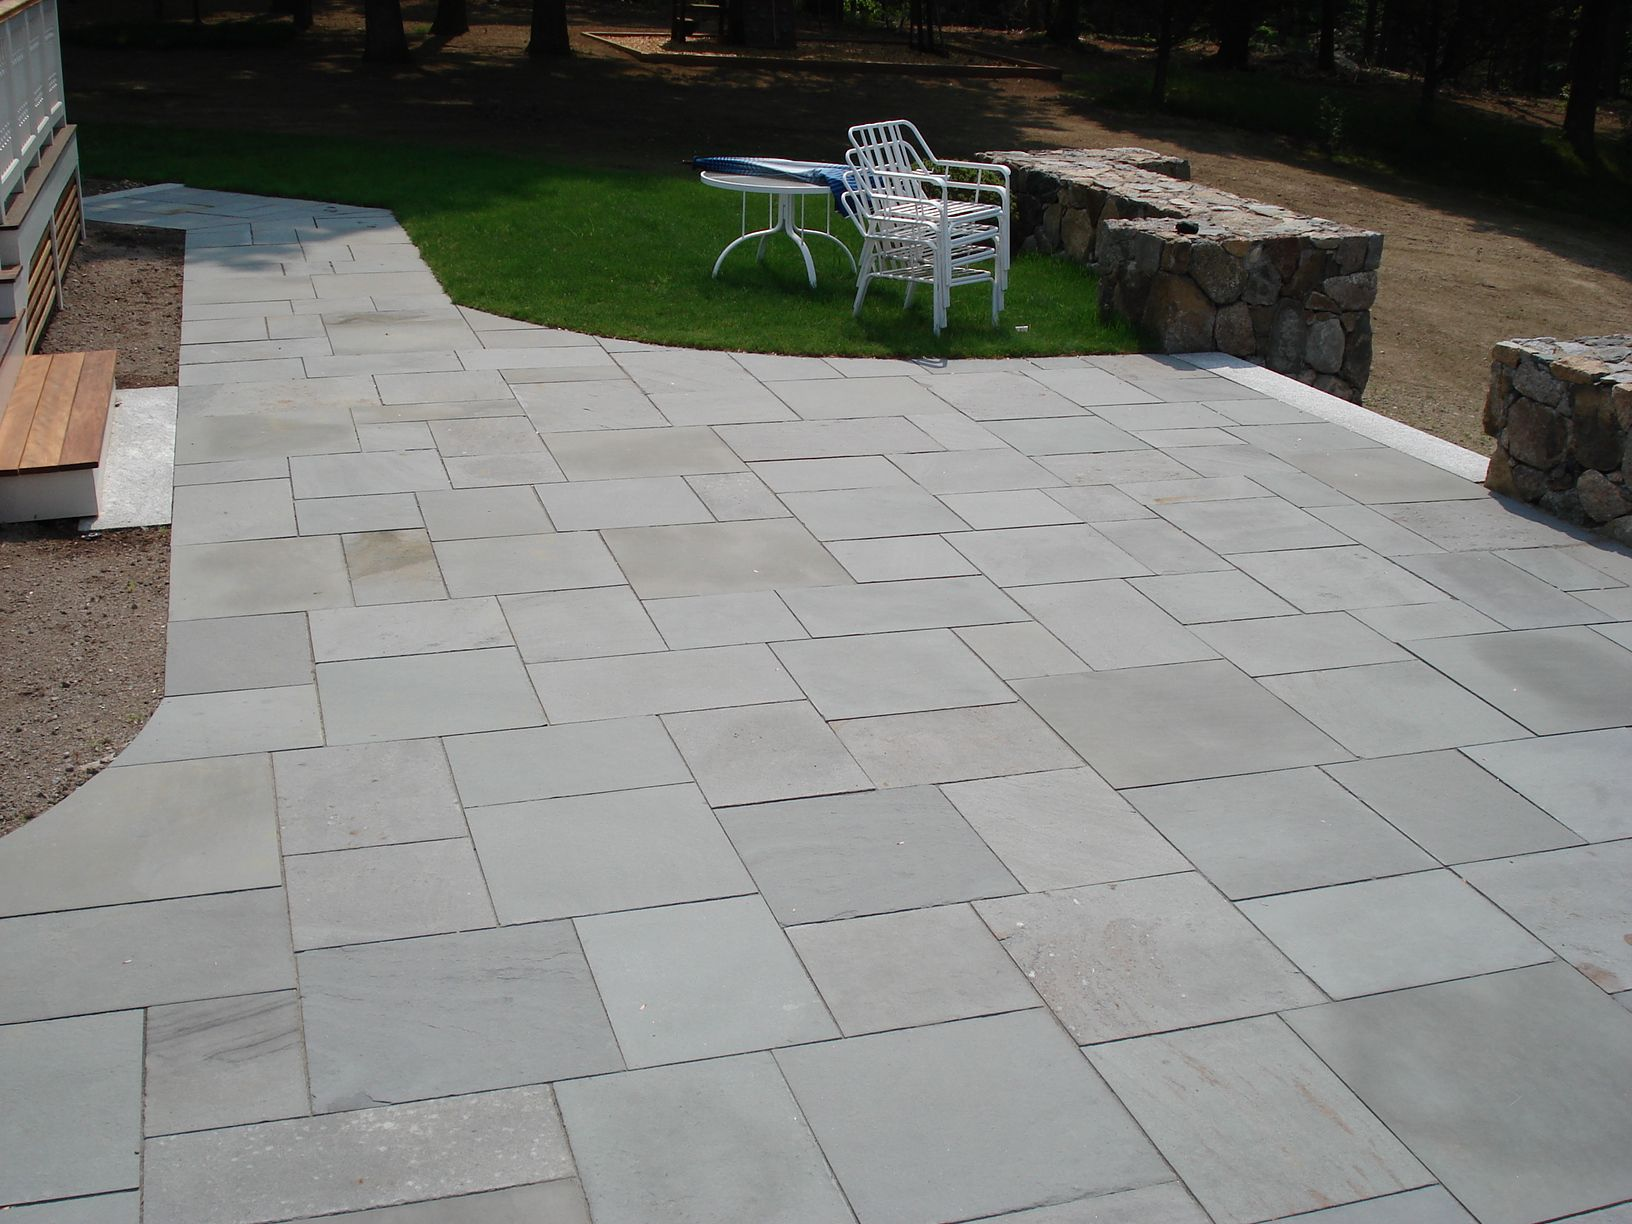 25 great stone patio ideas for your home | stone slab, stone and ... - Slab Patio Ideas